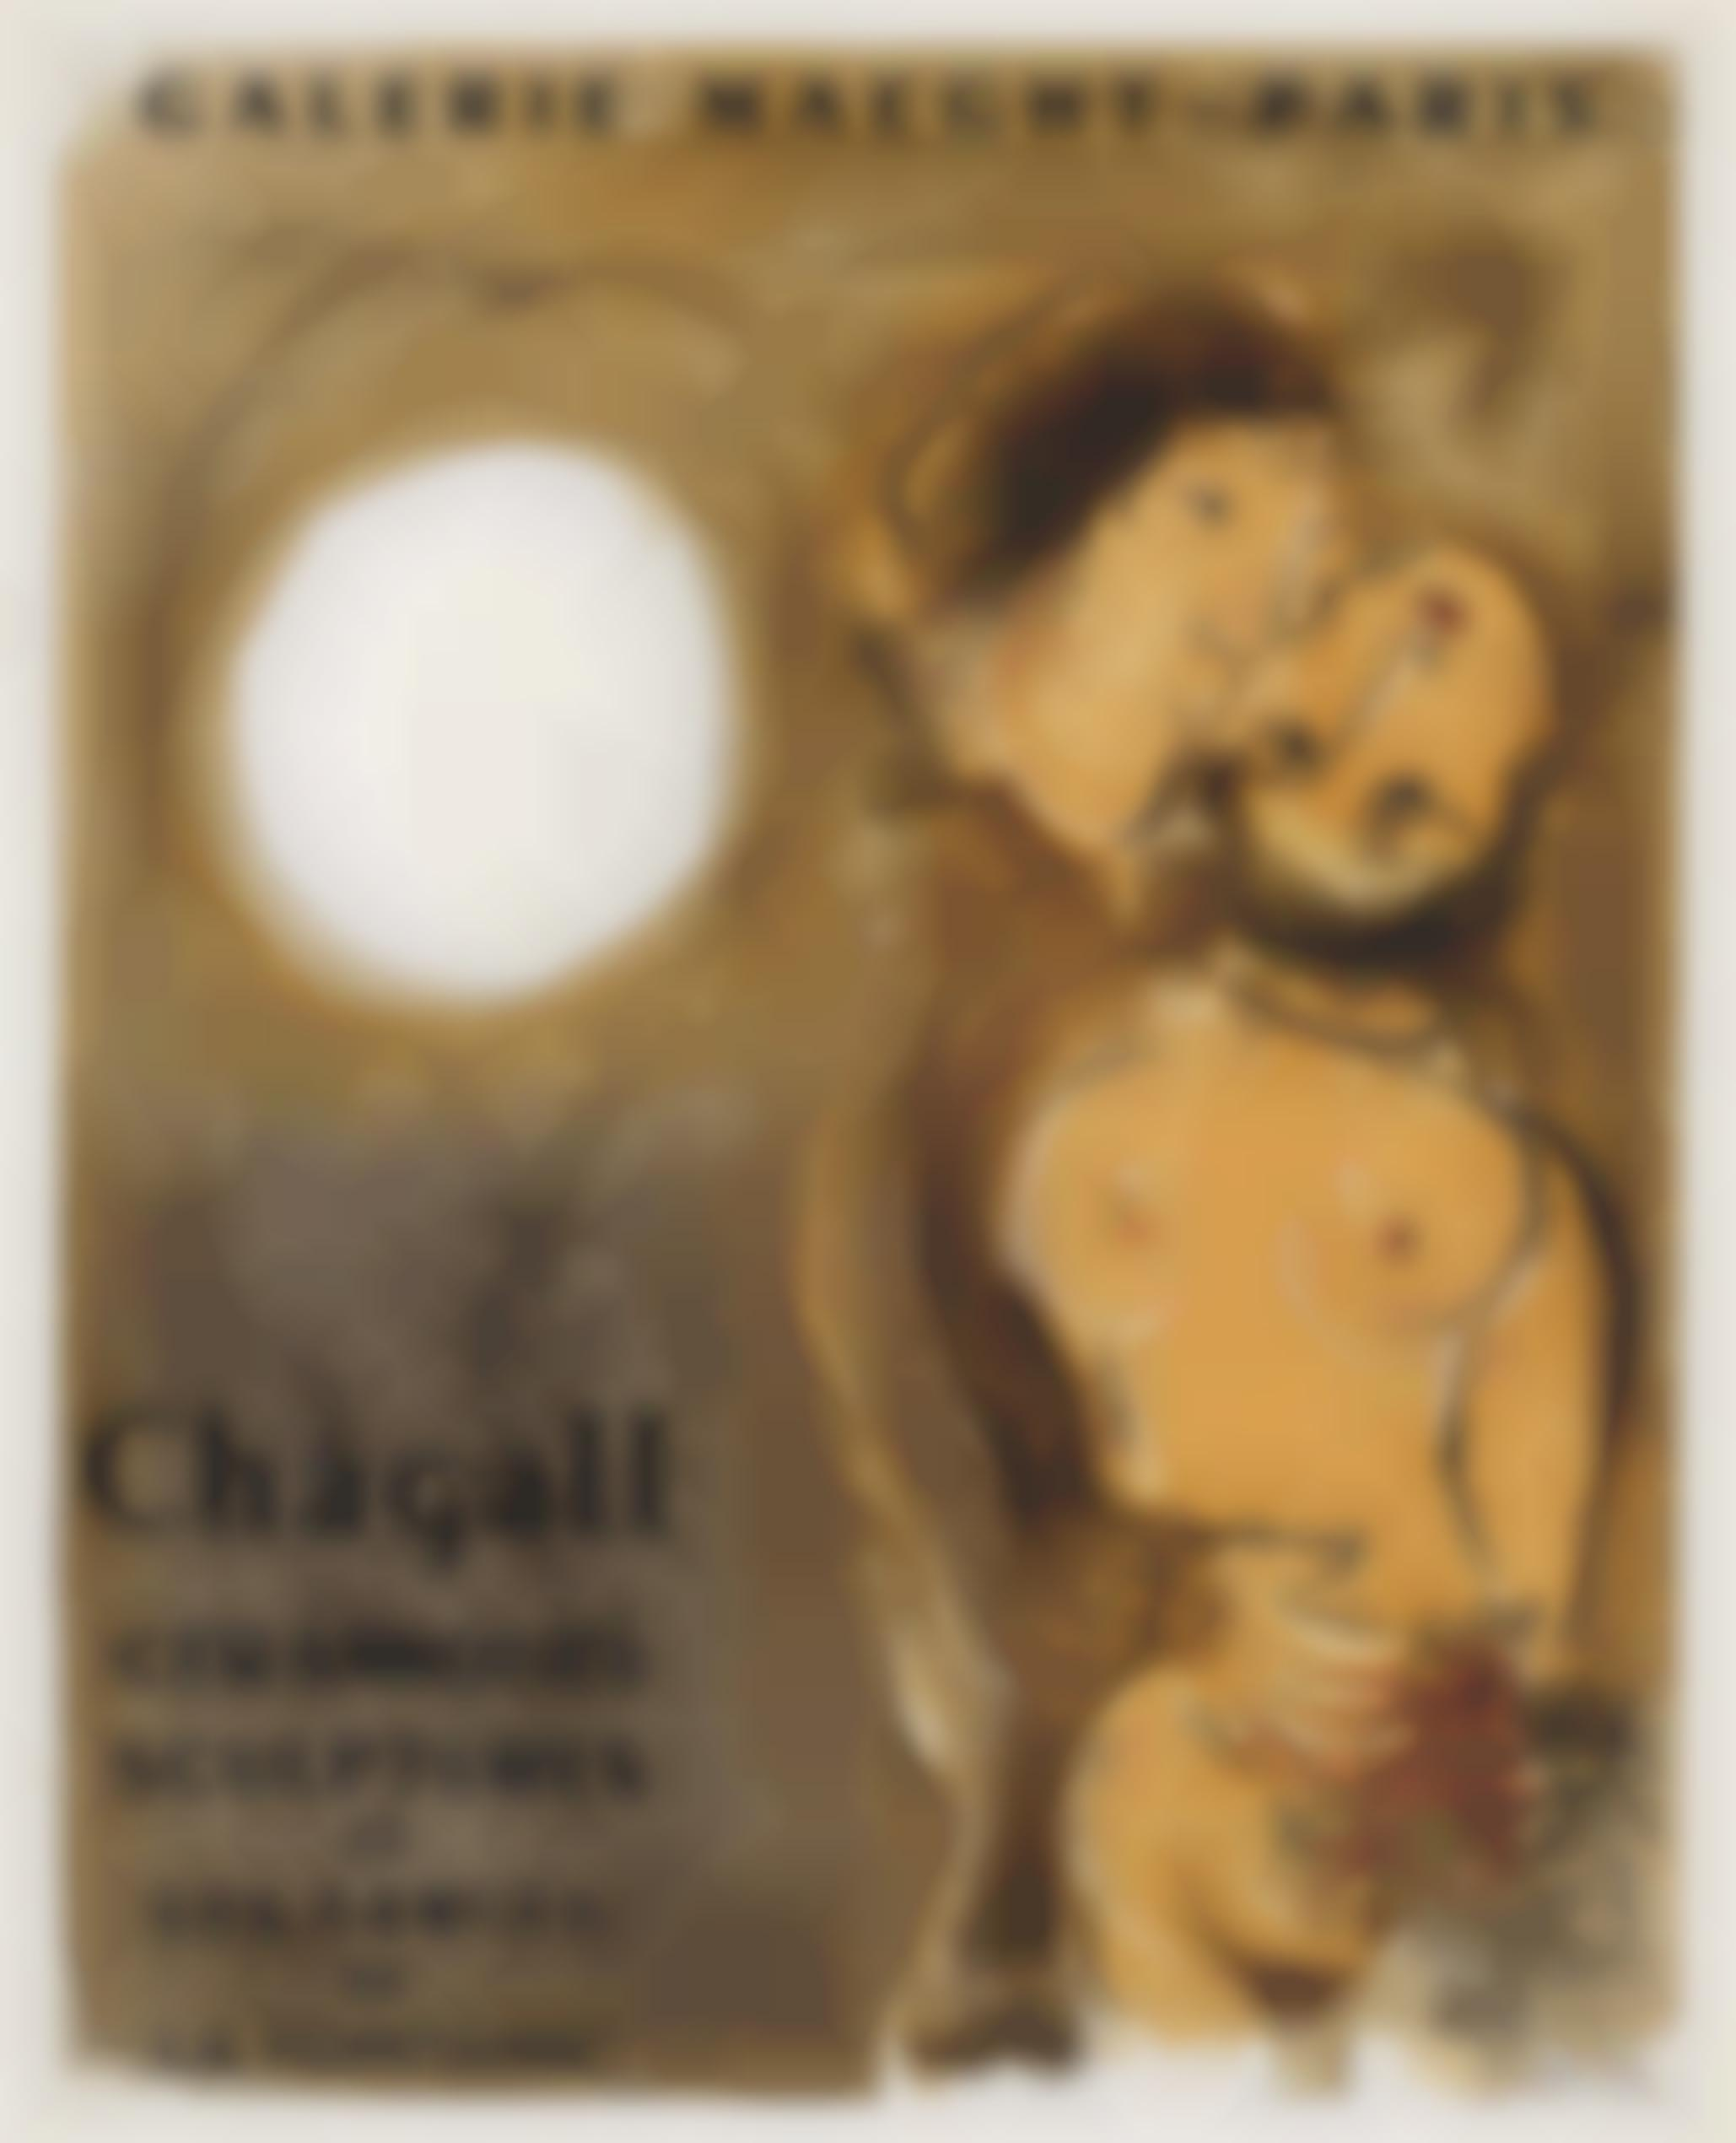 Marc Chagall-Couple In Ocher Chagall Ceramiques, Sculptures And Fables De La Fontaine. Angel - Poster For The Kunsthalle Bern-1956